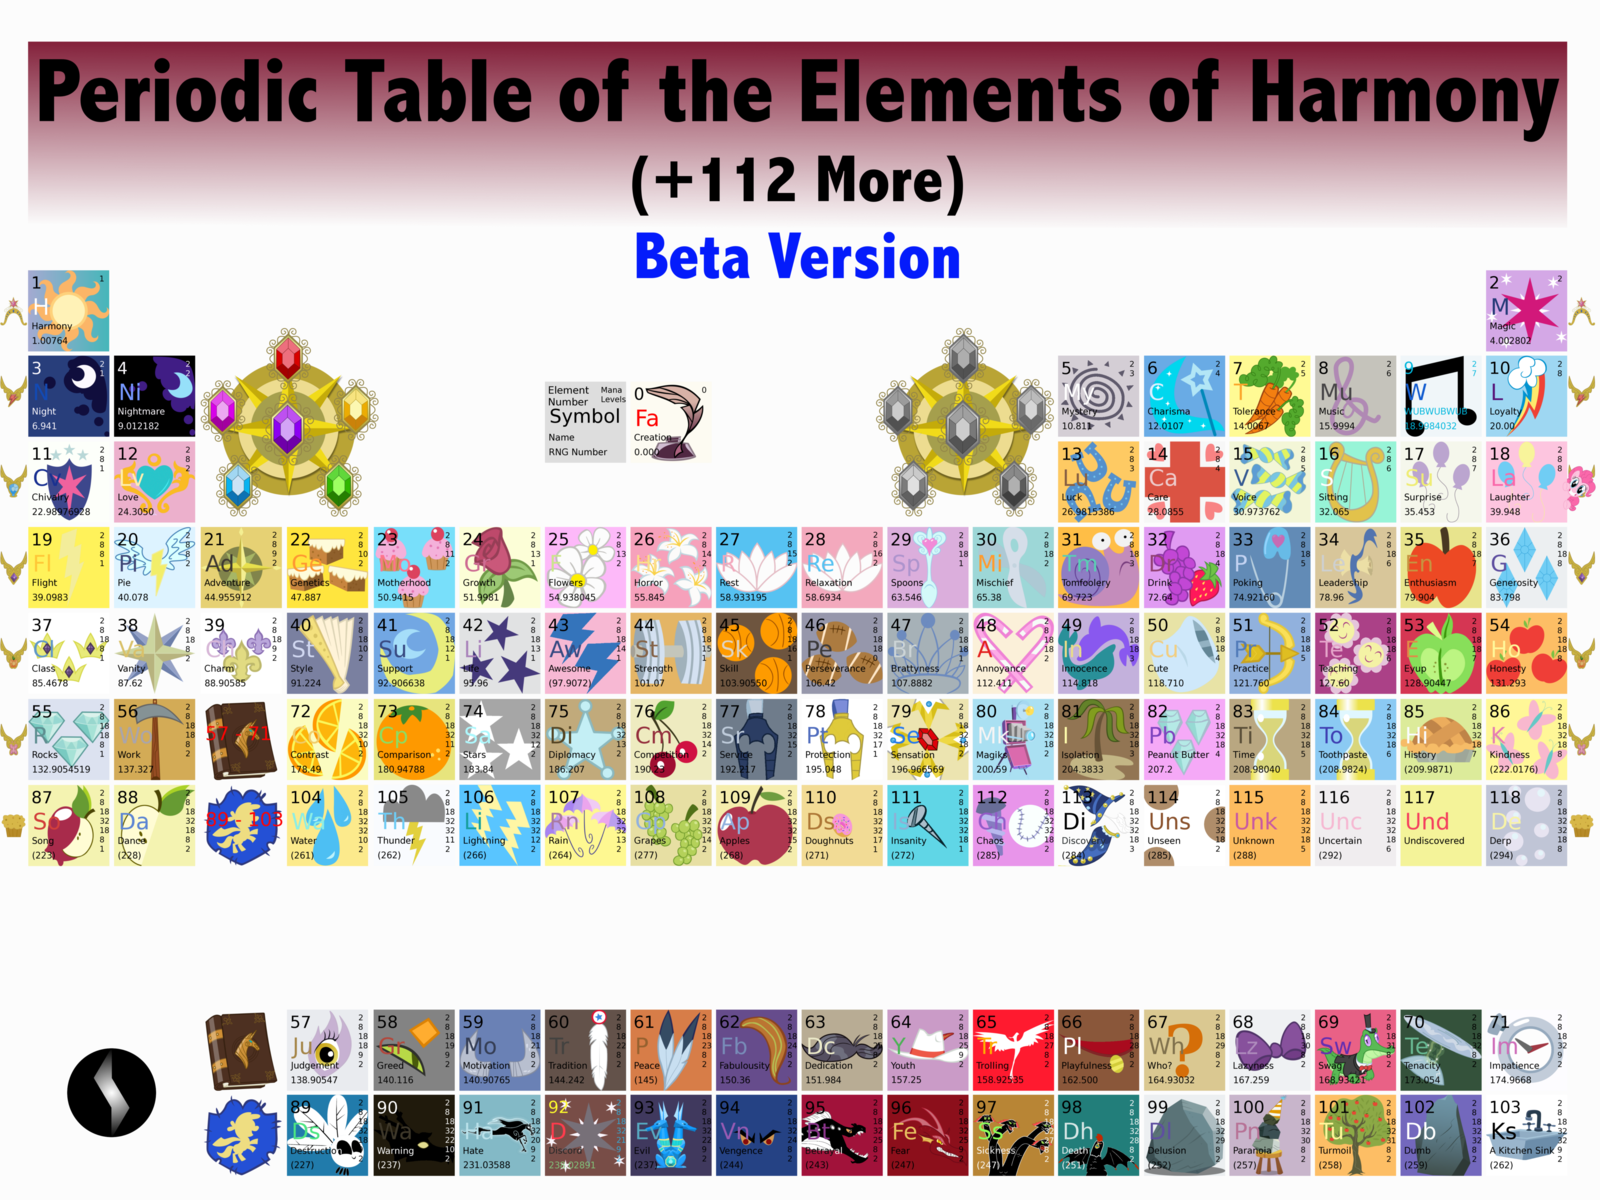 Periodic table of elements of harmony periodic table 1 periodic table of elements of harmony urtaz Choice Image